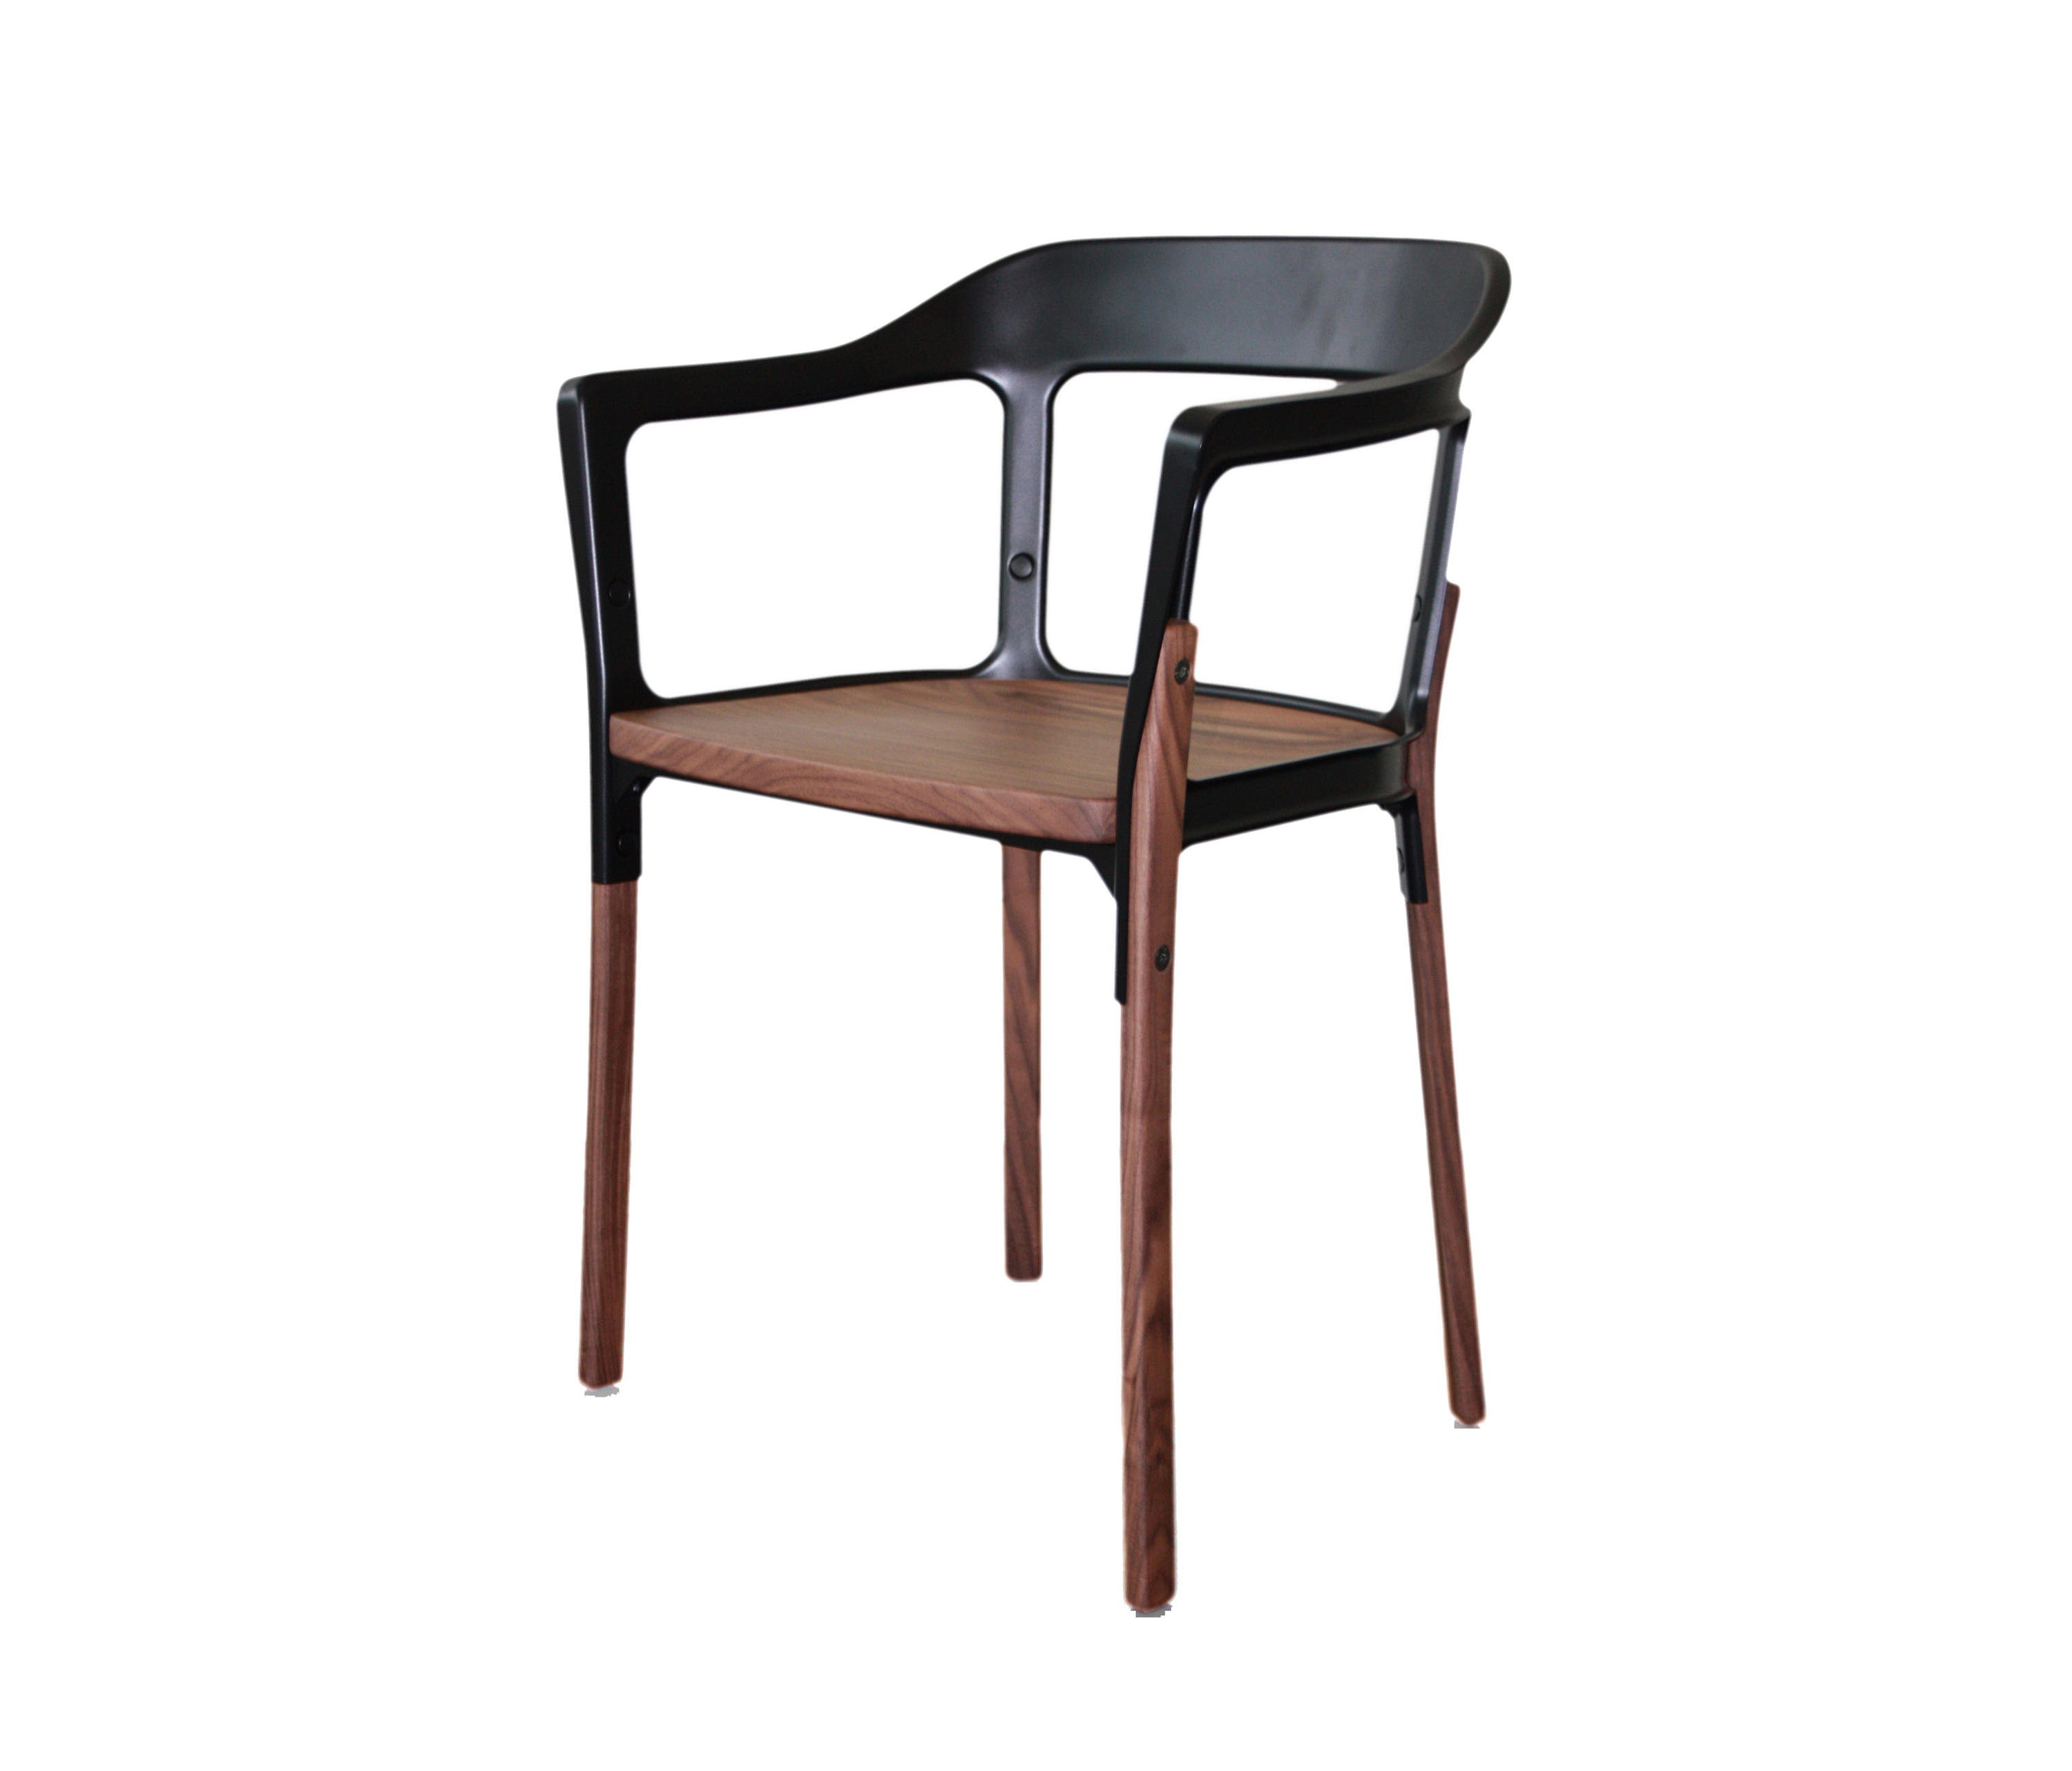 Steelwood chair visitors chairs side chairs from magis for Magis chair